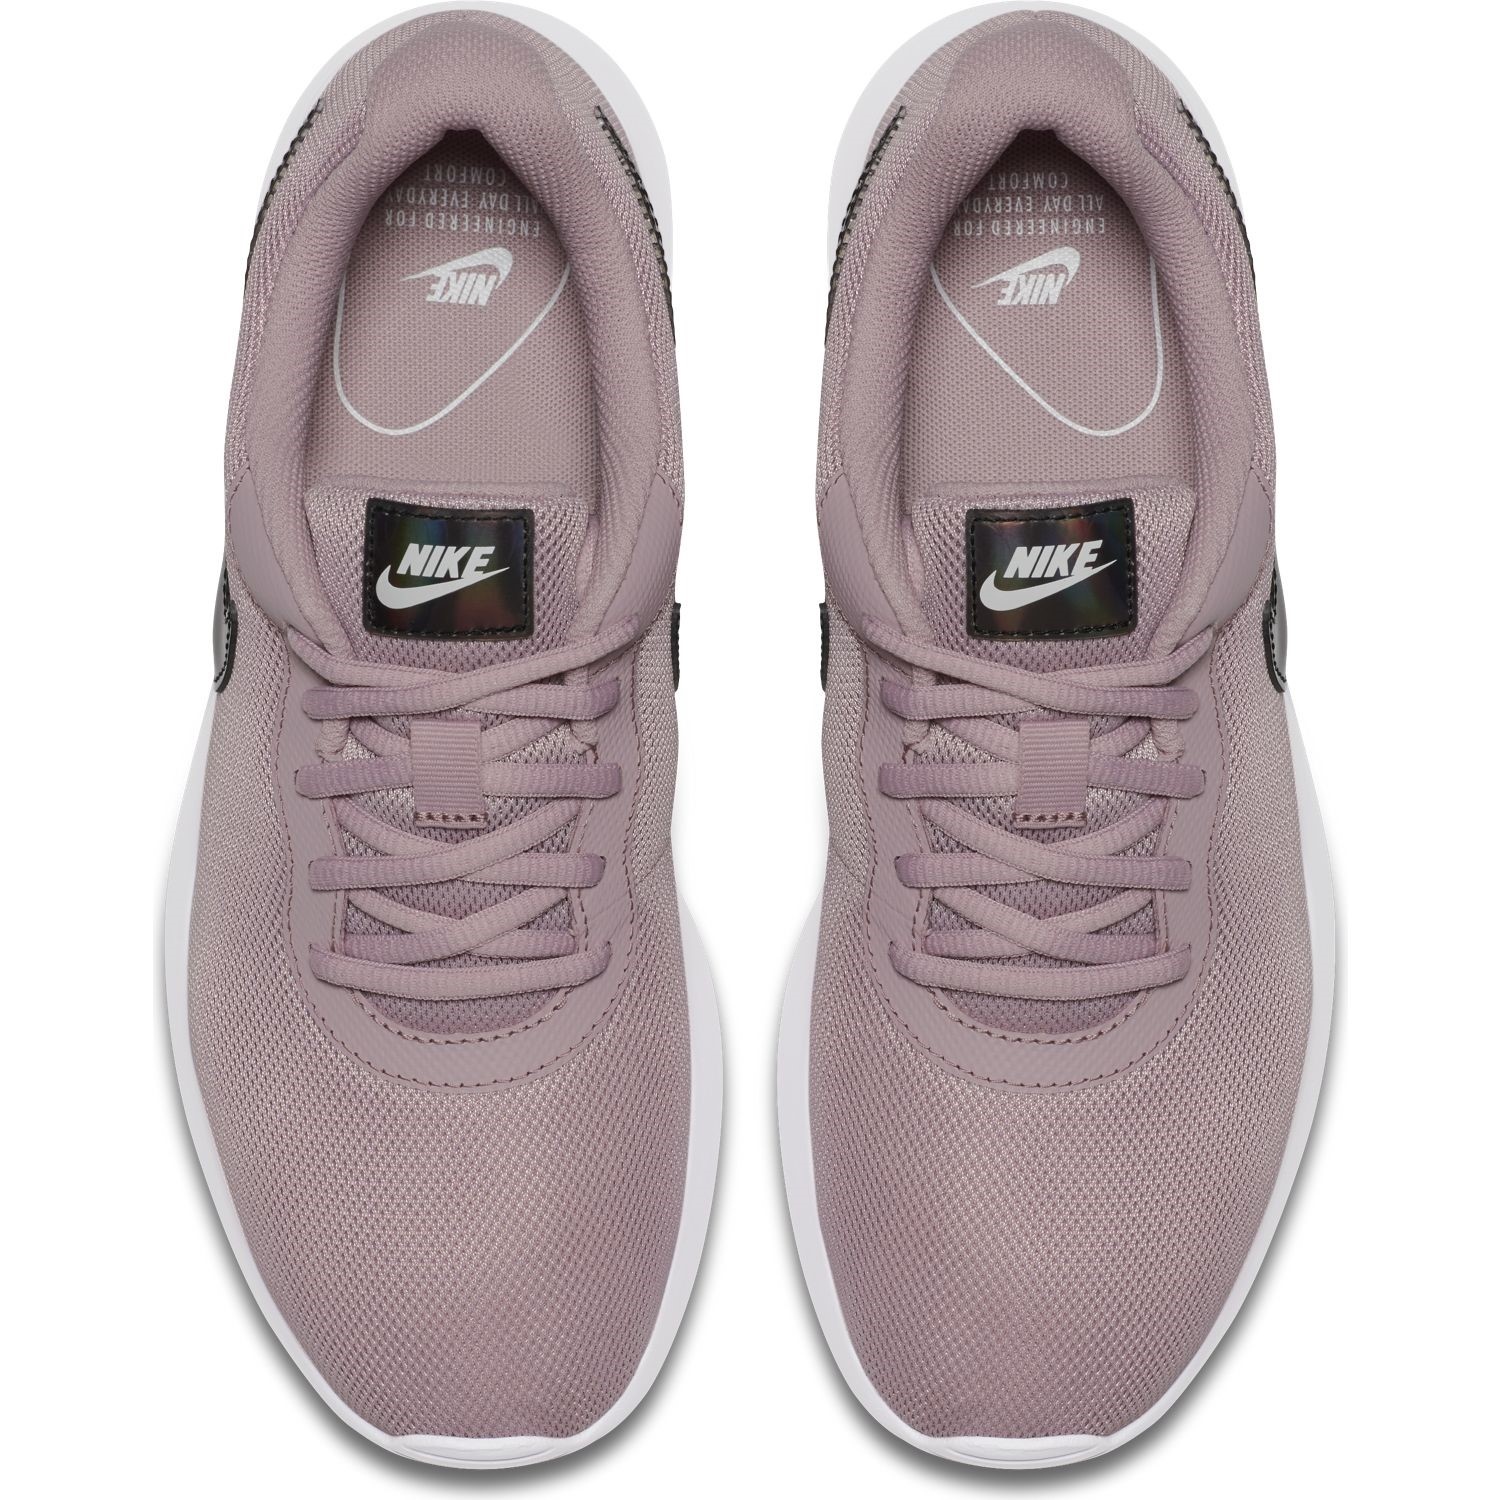 2b1a83a990f Nike Tanjun - Womens Sneakers - Plum Chalk/White | Sportitude